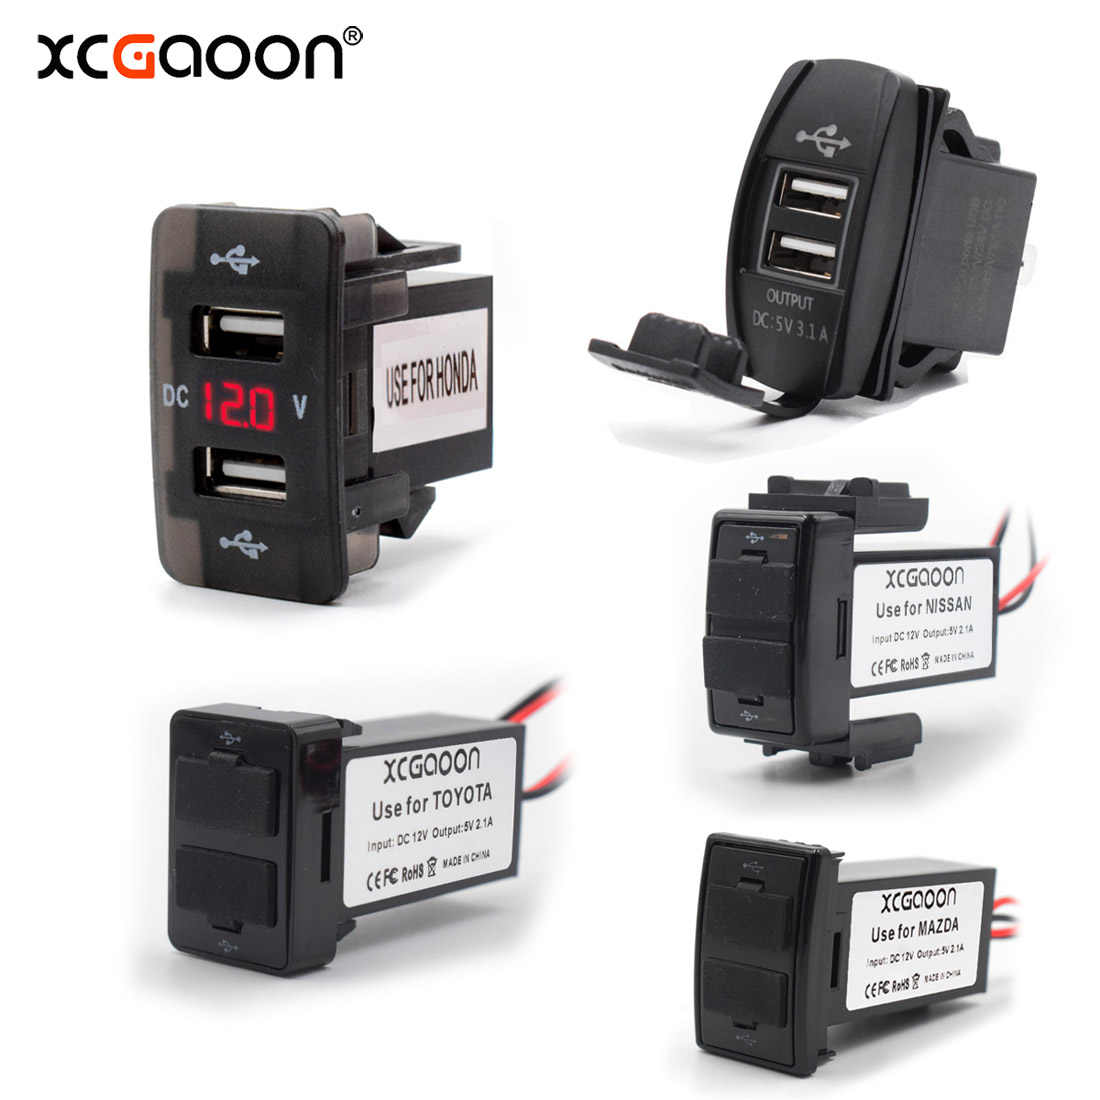 XCGaoon Special Dedicated 2 USB Interface Socket Car Charger for TOYOTA / HONDA / MITSUBISHI / NISSAN / MAZDA / SUZUKI